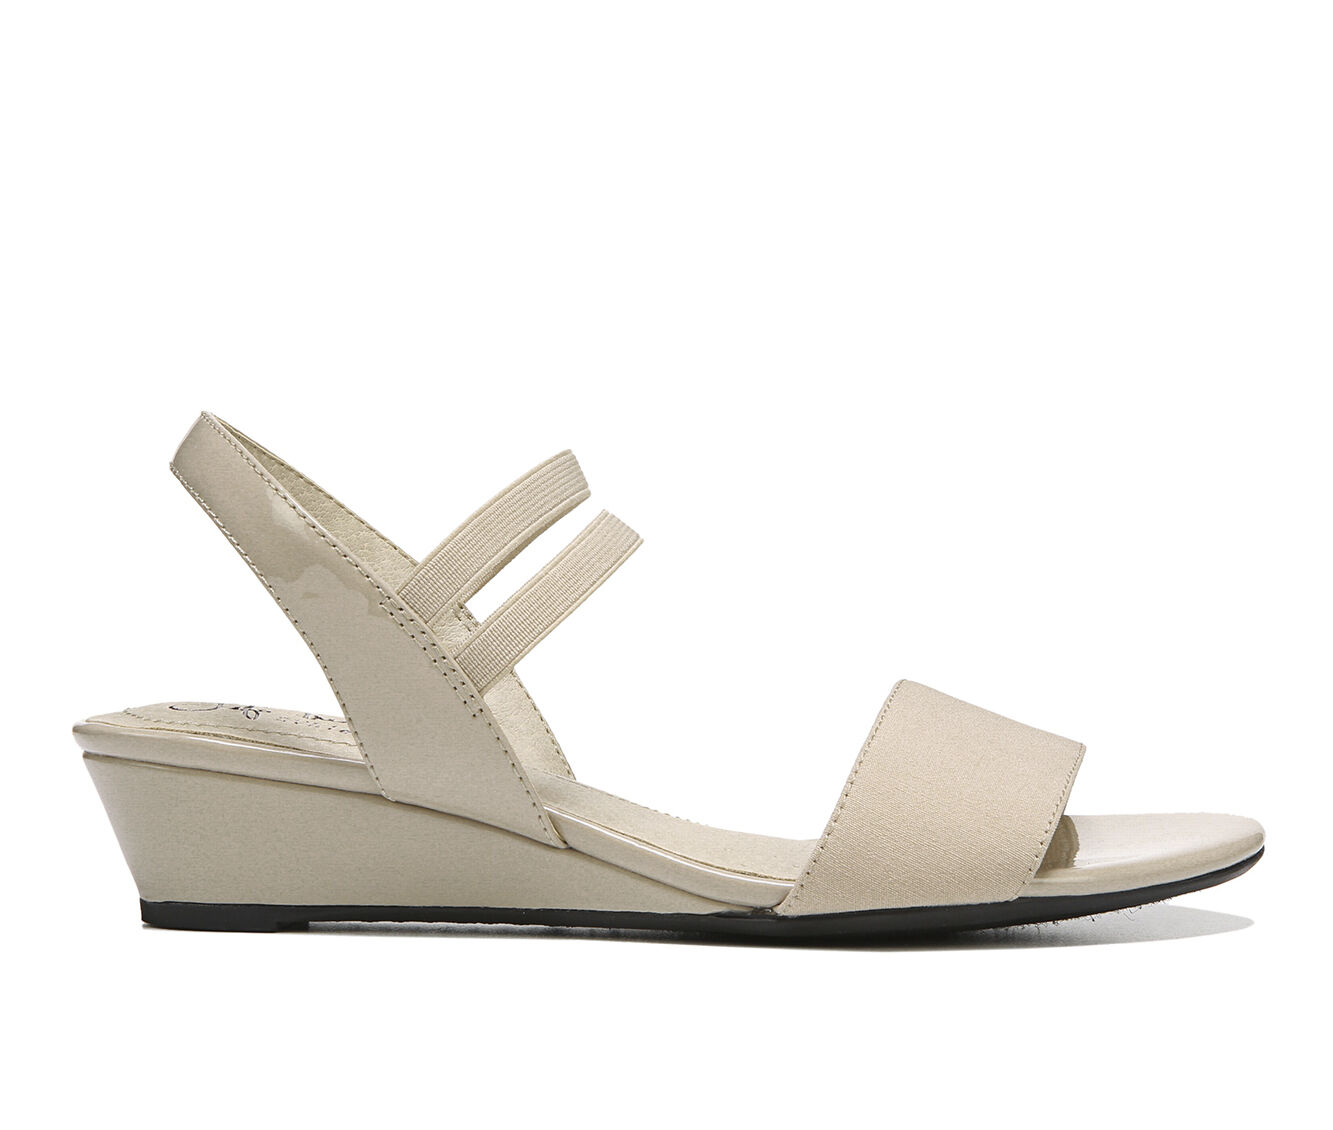 Women's LifeStride Yolo Wedge Sandals Tender Taupe